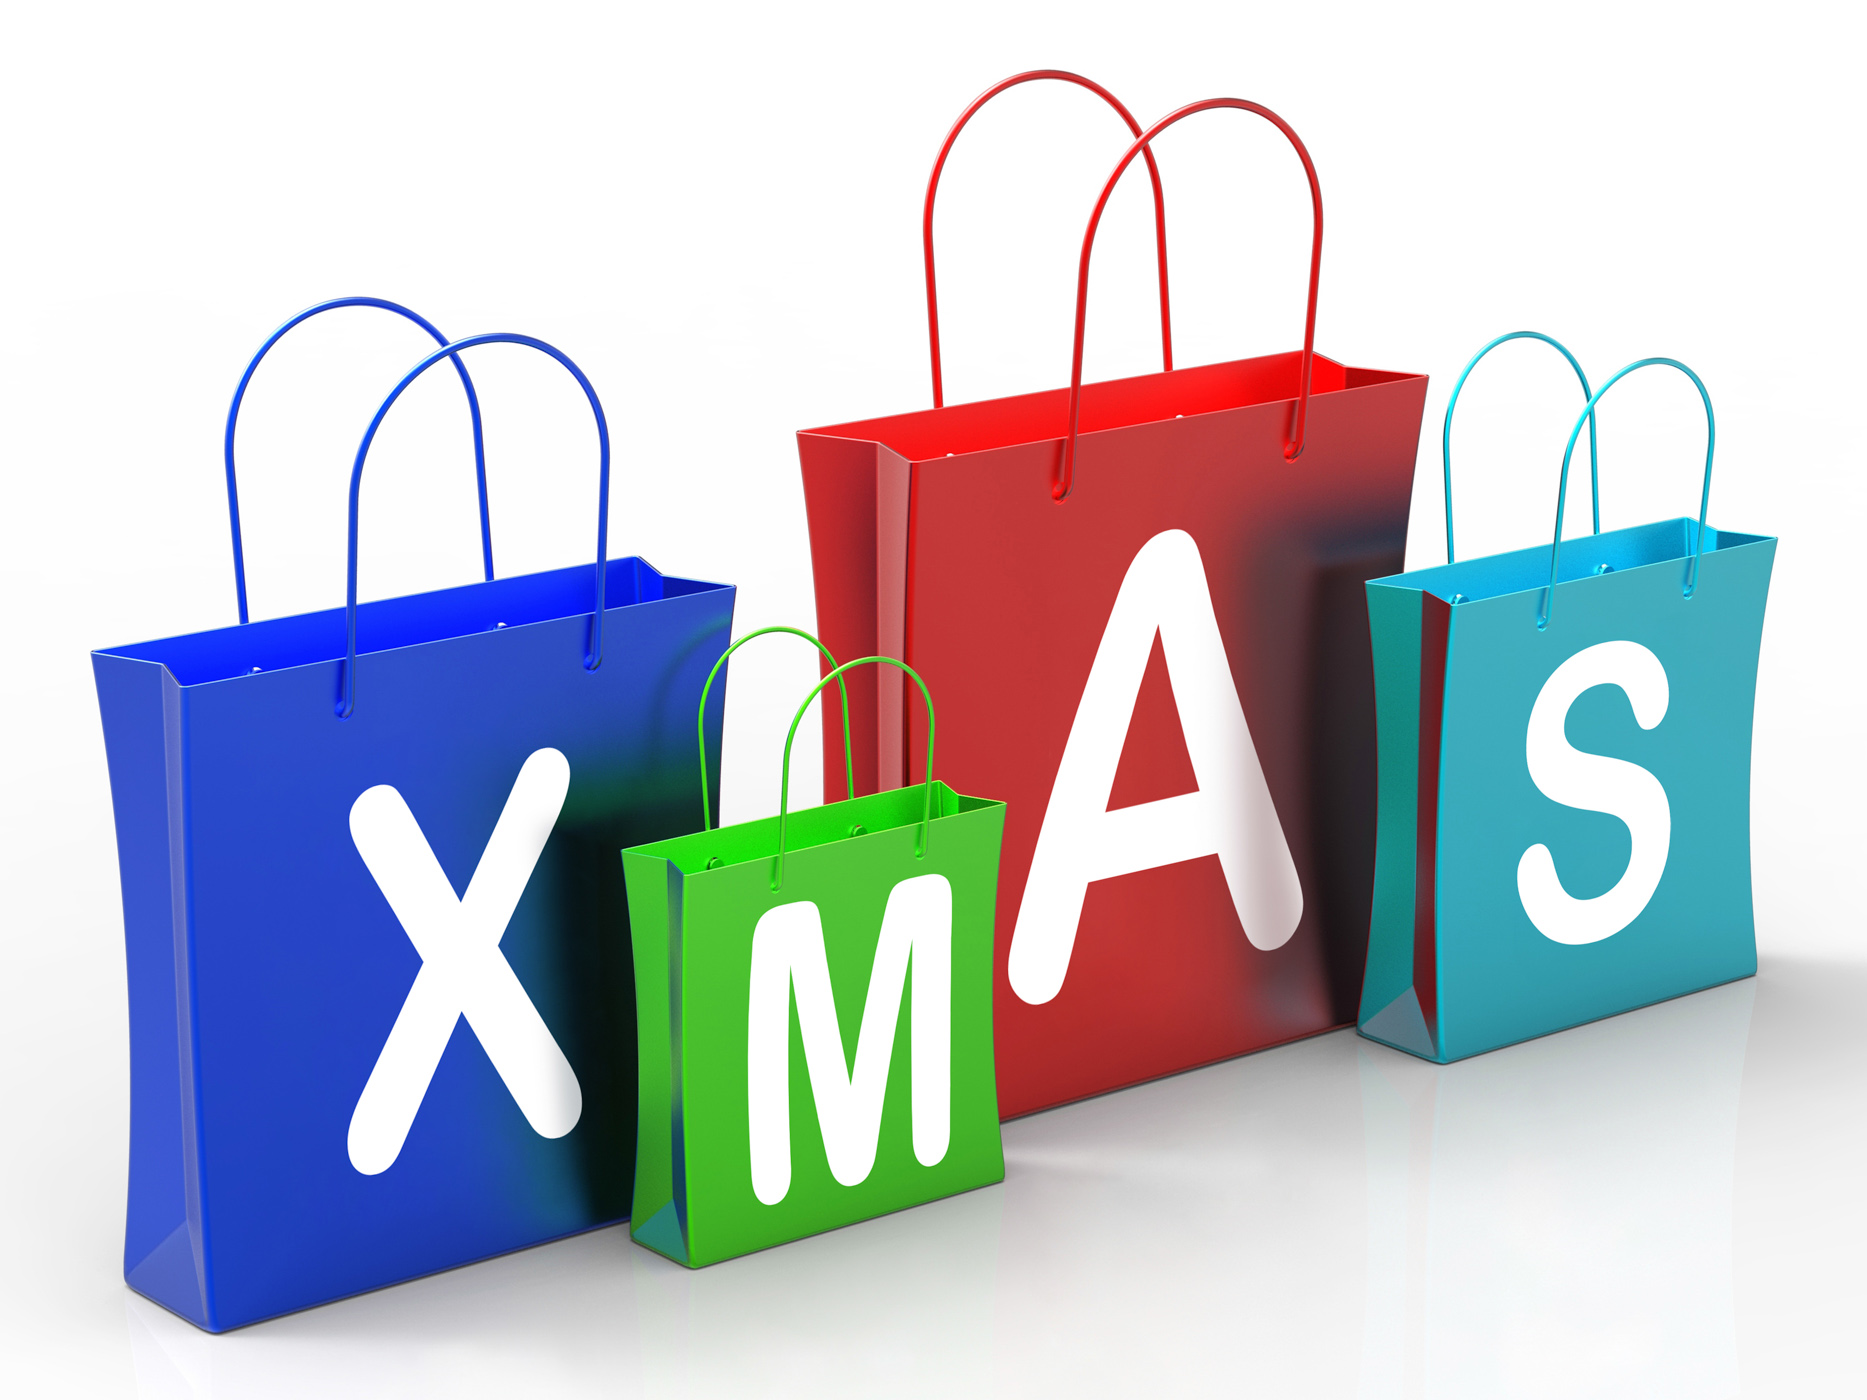 Xmas shopping bags show retail stores or buying photo